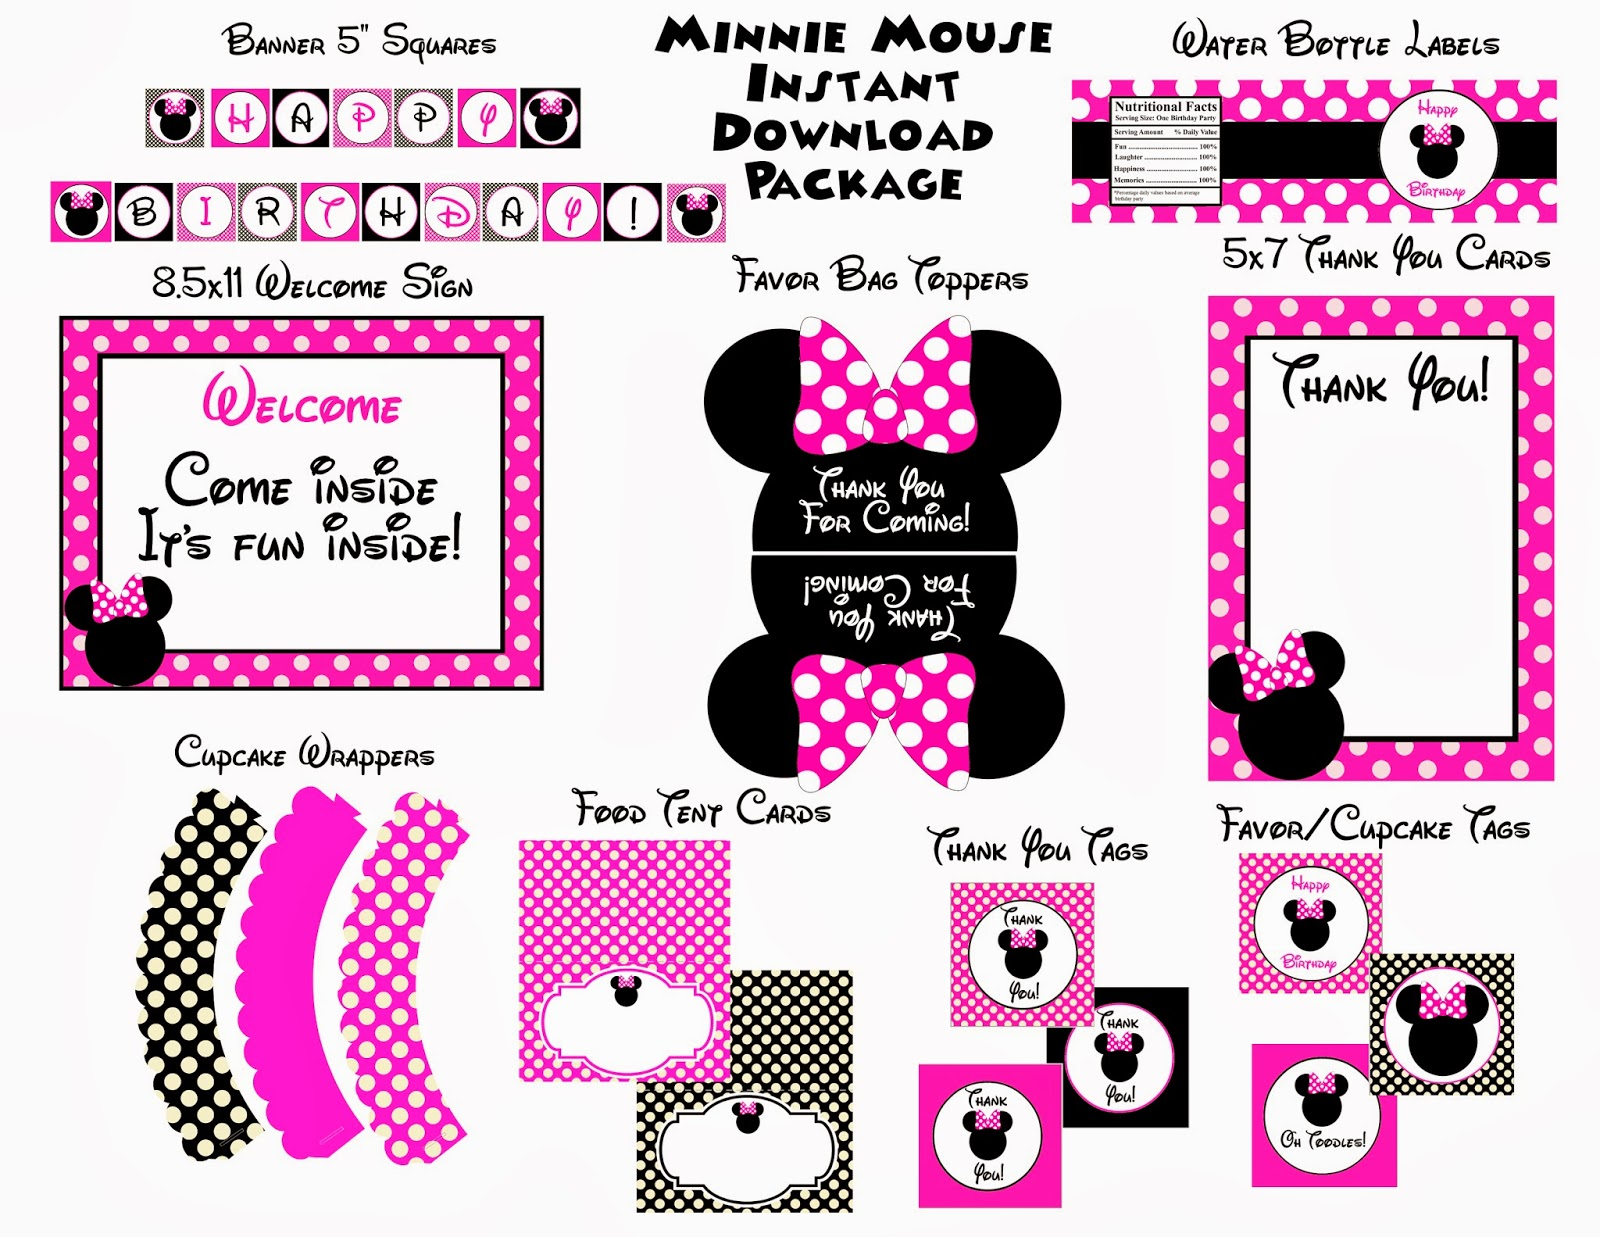 Minnie Mouse Head Invitation Template as great invitations design